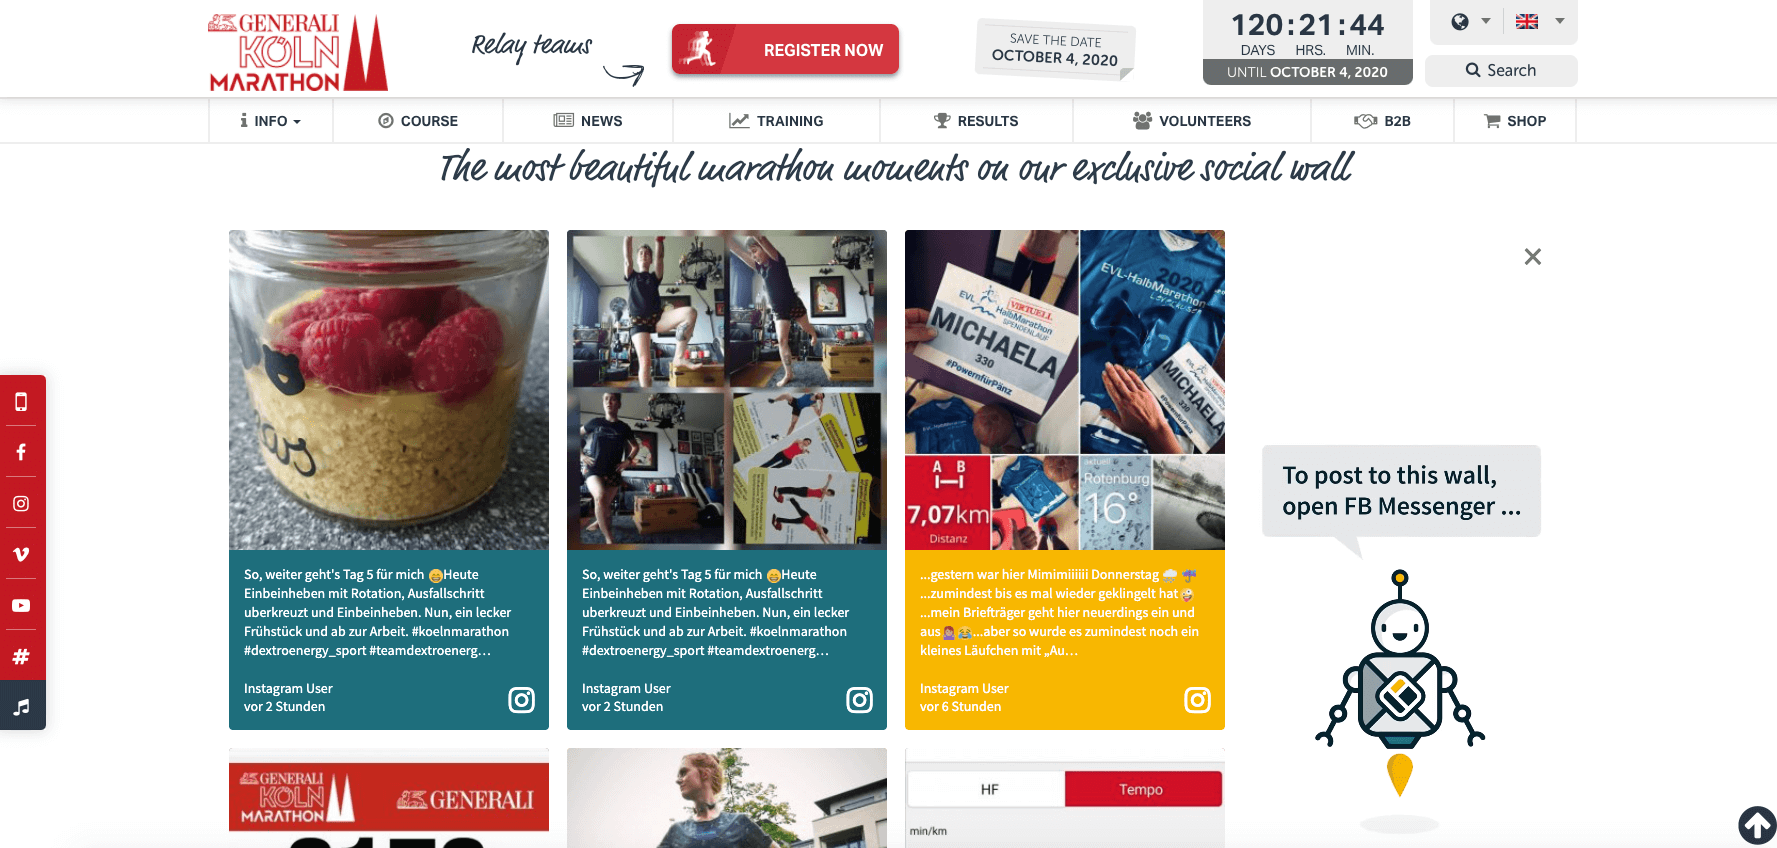 Screenshot of the Cologne Marathon website with the social wall embedded. Next to social media posts, the social wall also shows an image of the Walls.io mascot promoting the feature that allows people to post to a social wall using Facebook Messenger.